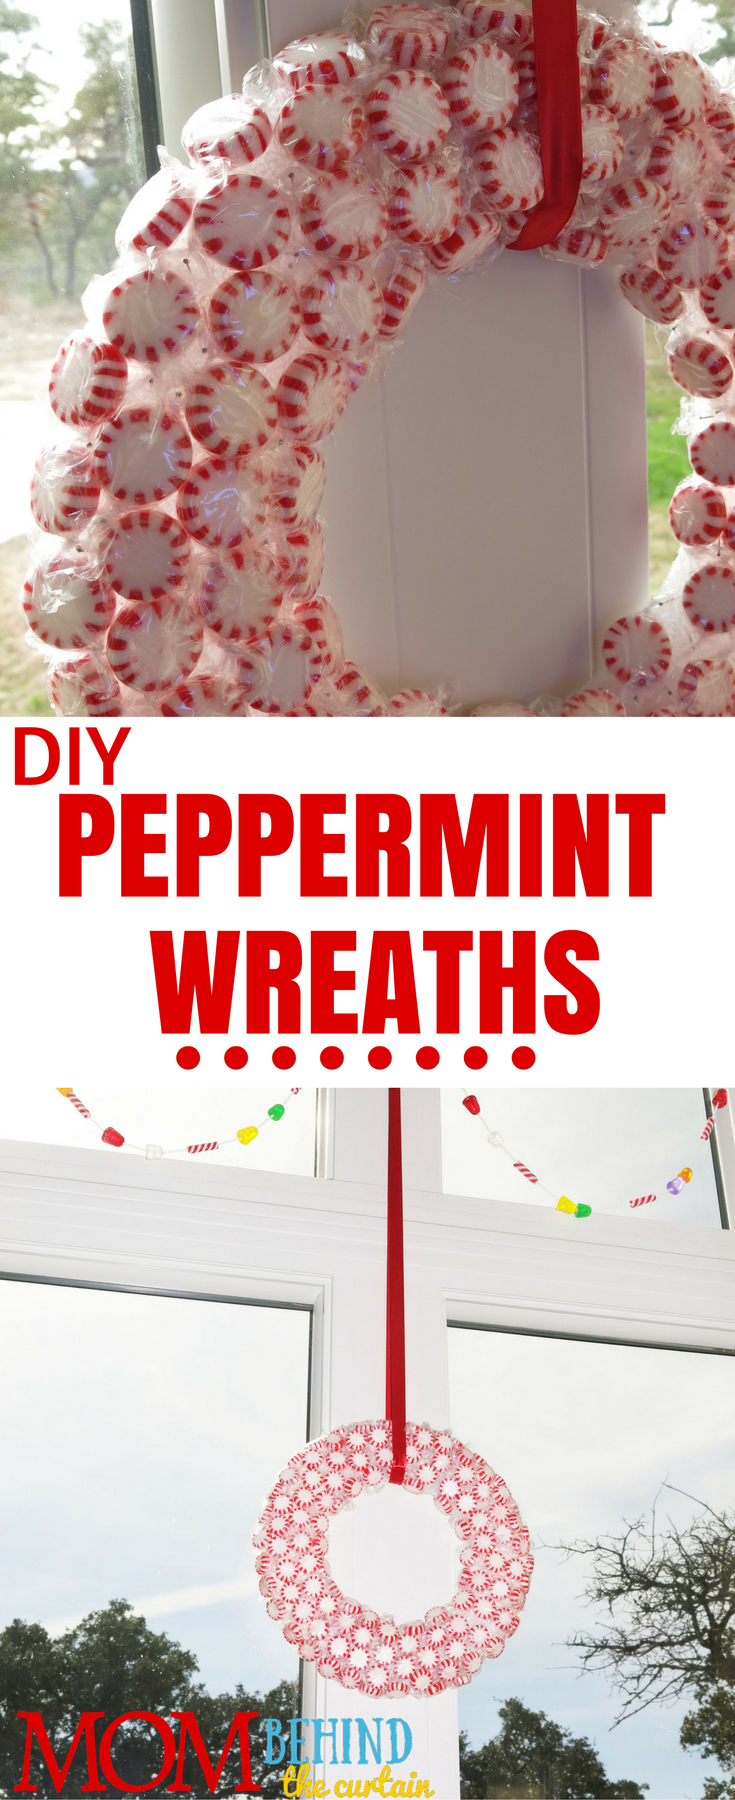 Christmas decor - DIY peppermint wreaths. My daughters made these with me years ago and we still enjoy hanging them in our kitchen windows every year. I share tips and tricks for this easy, original Christmas craft that your kids can help you with or even do on their own.